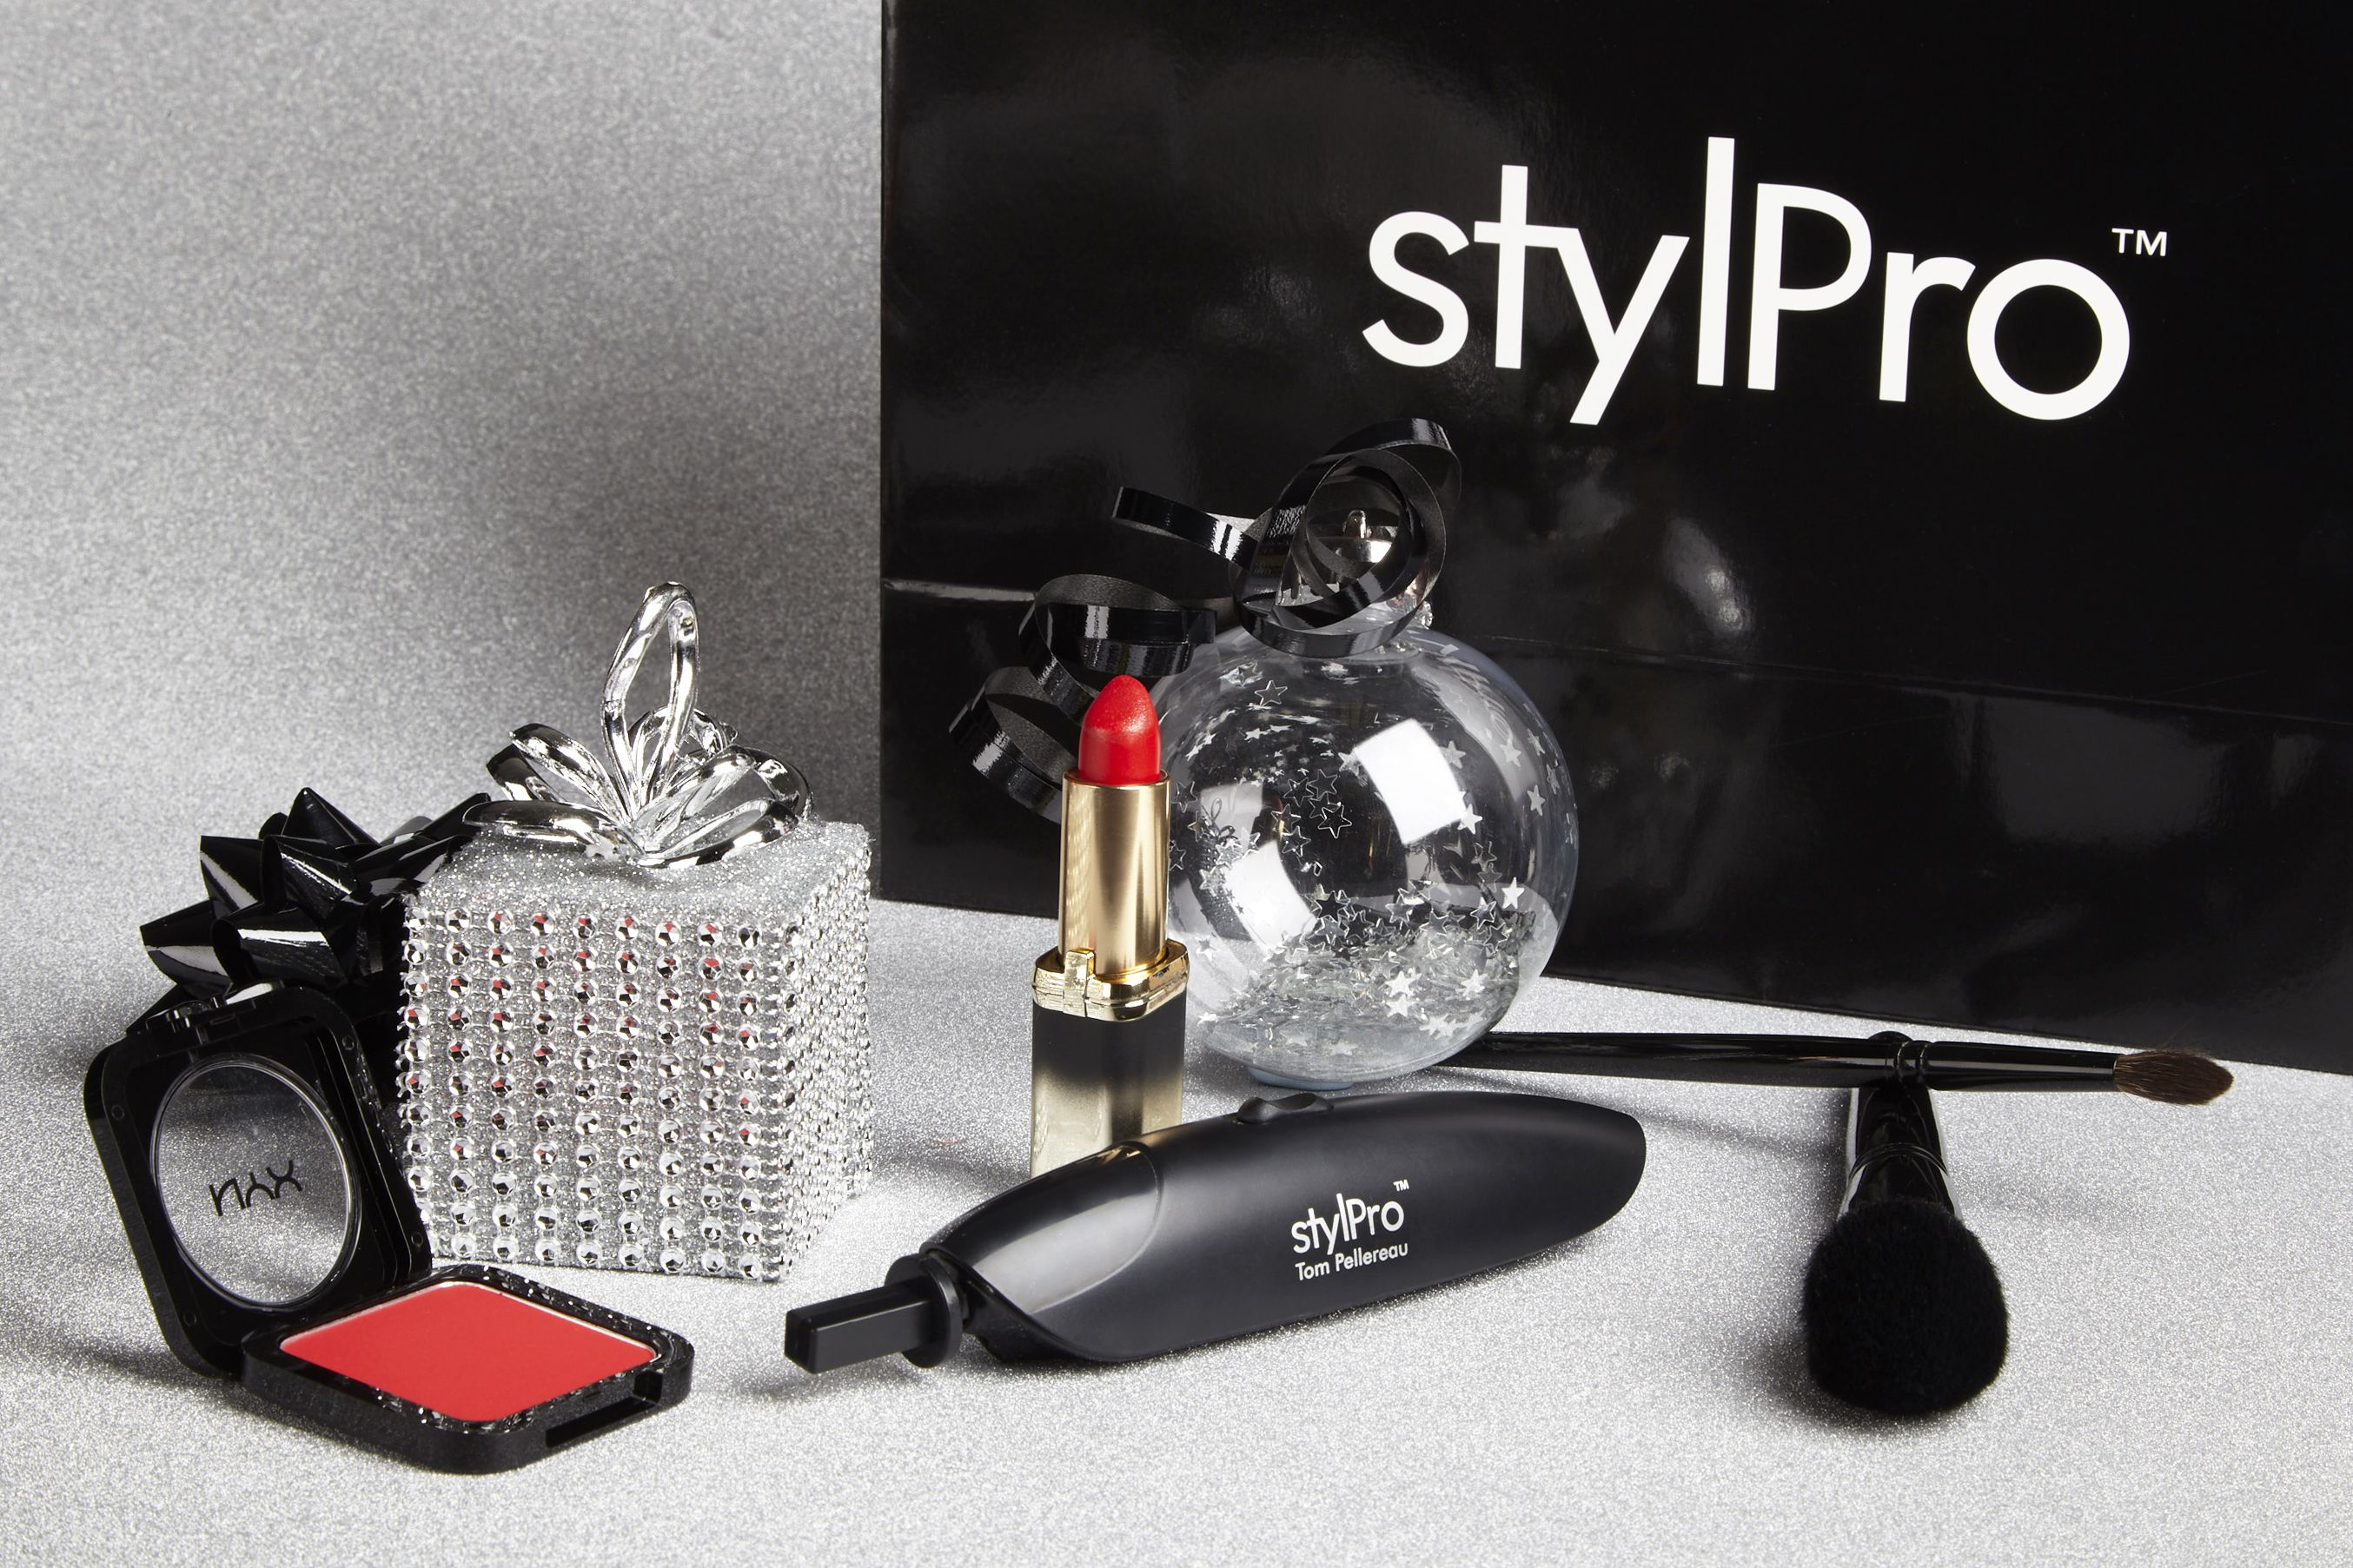 The StylPro makeup brush cleaner and dryer is the latest